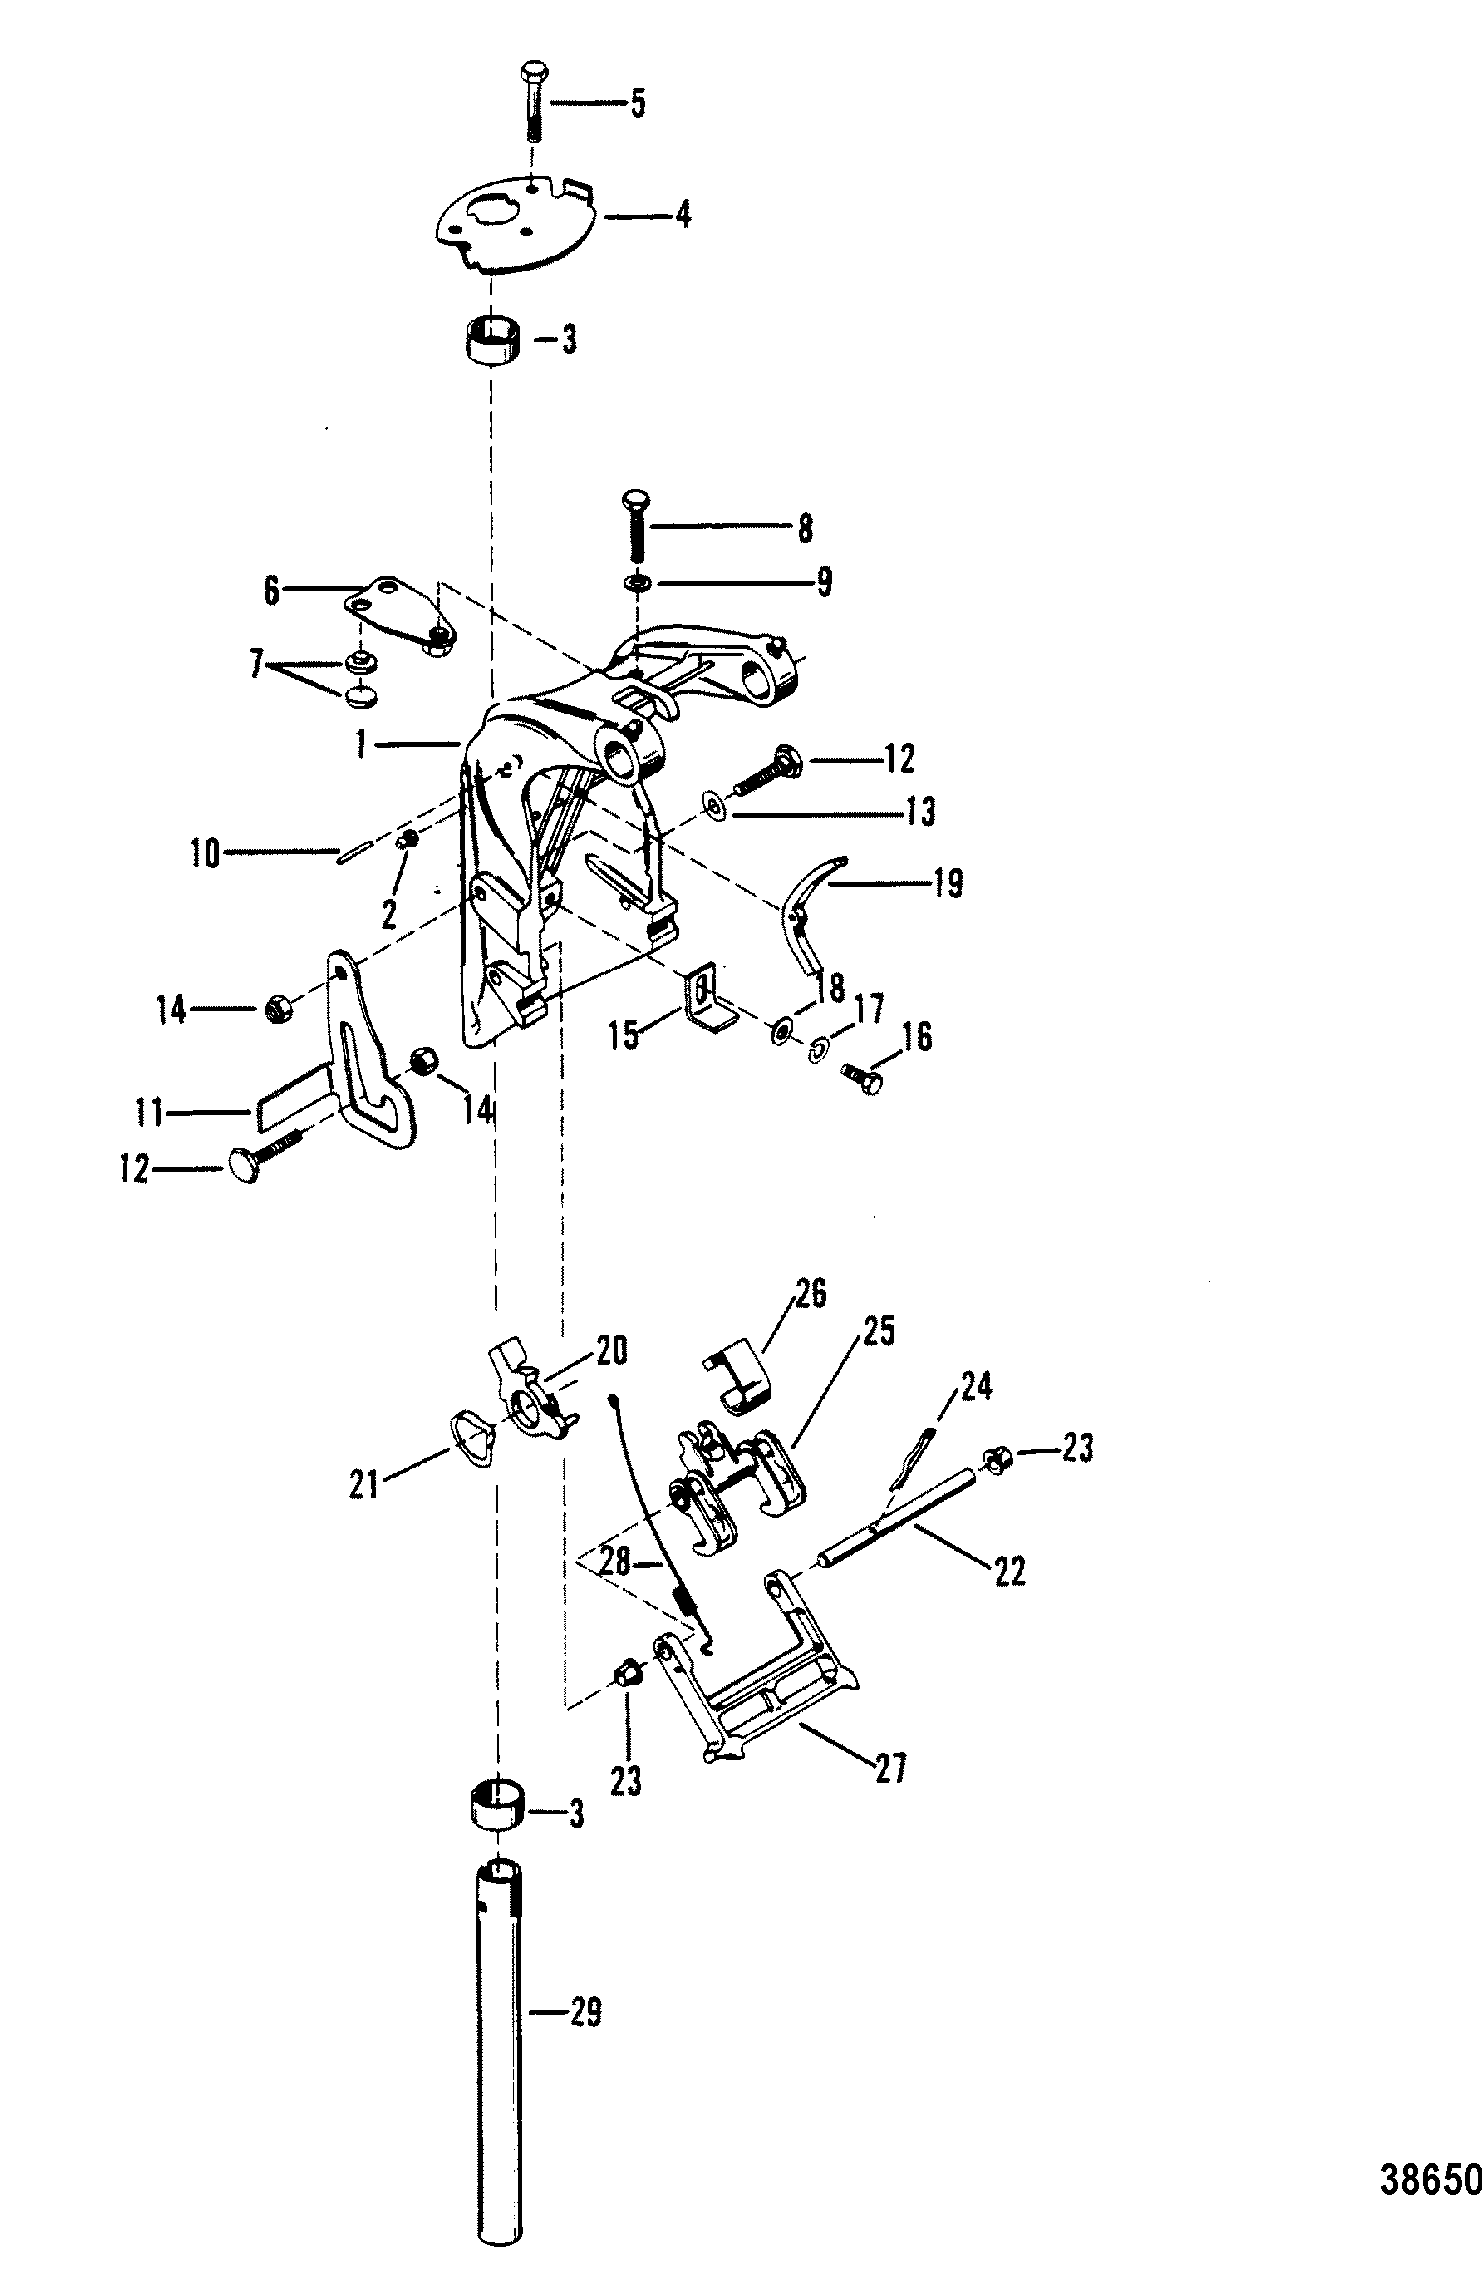 Mercury 9 8 7127388 Up Electric Components Outboard Stroke209cc 0r042475 Carburetor Diagram And 8057545 Swivel Bracket